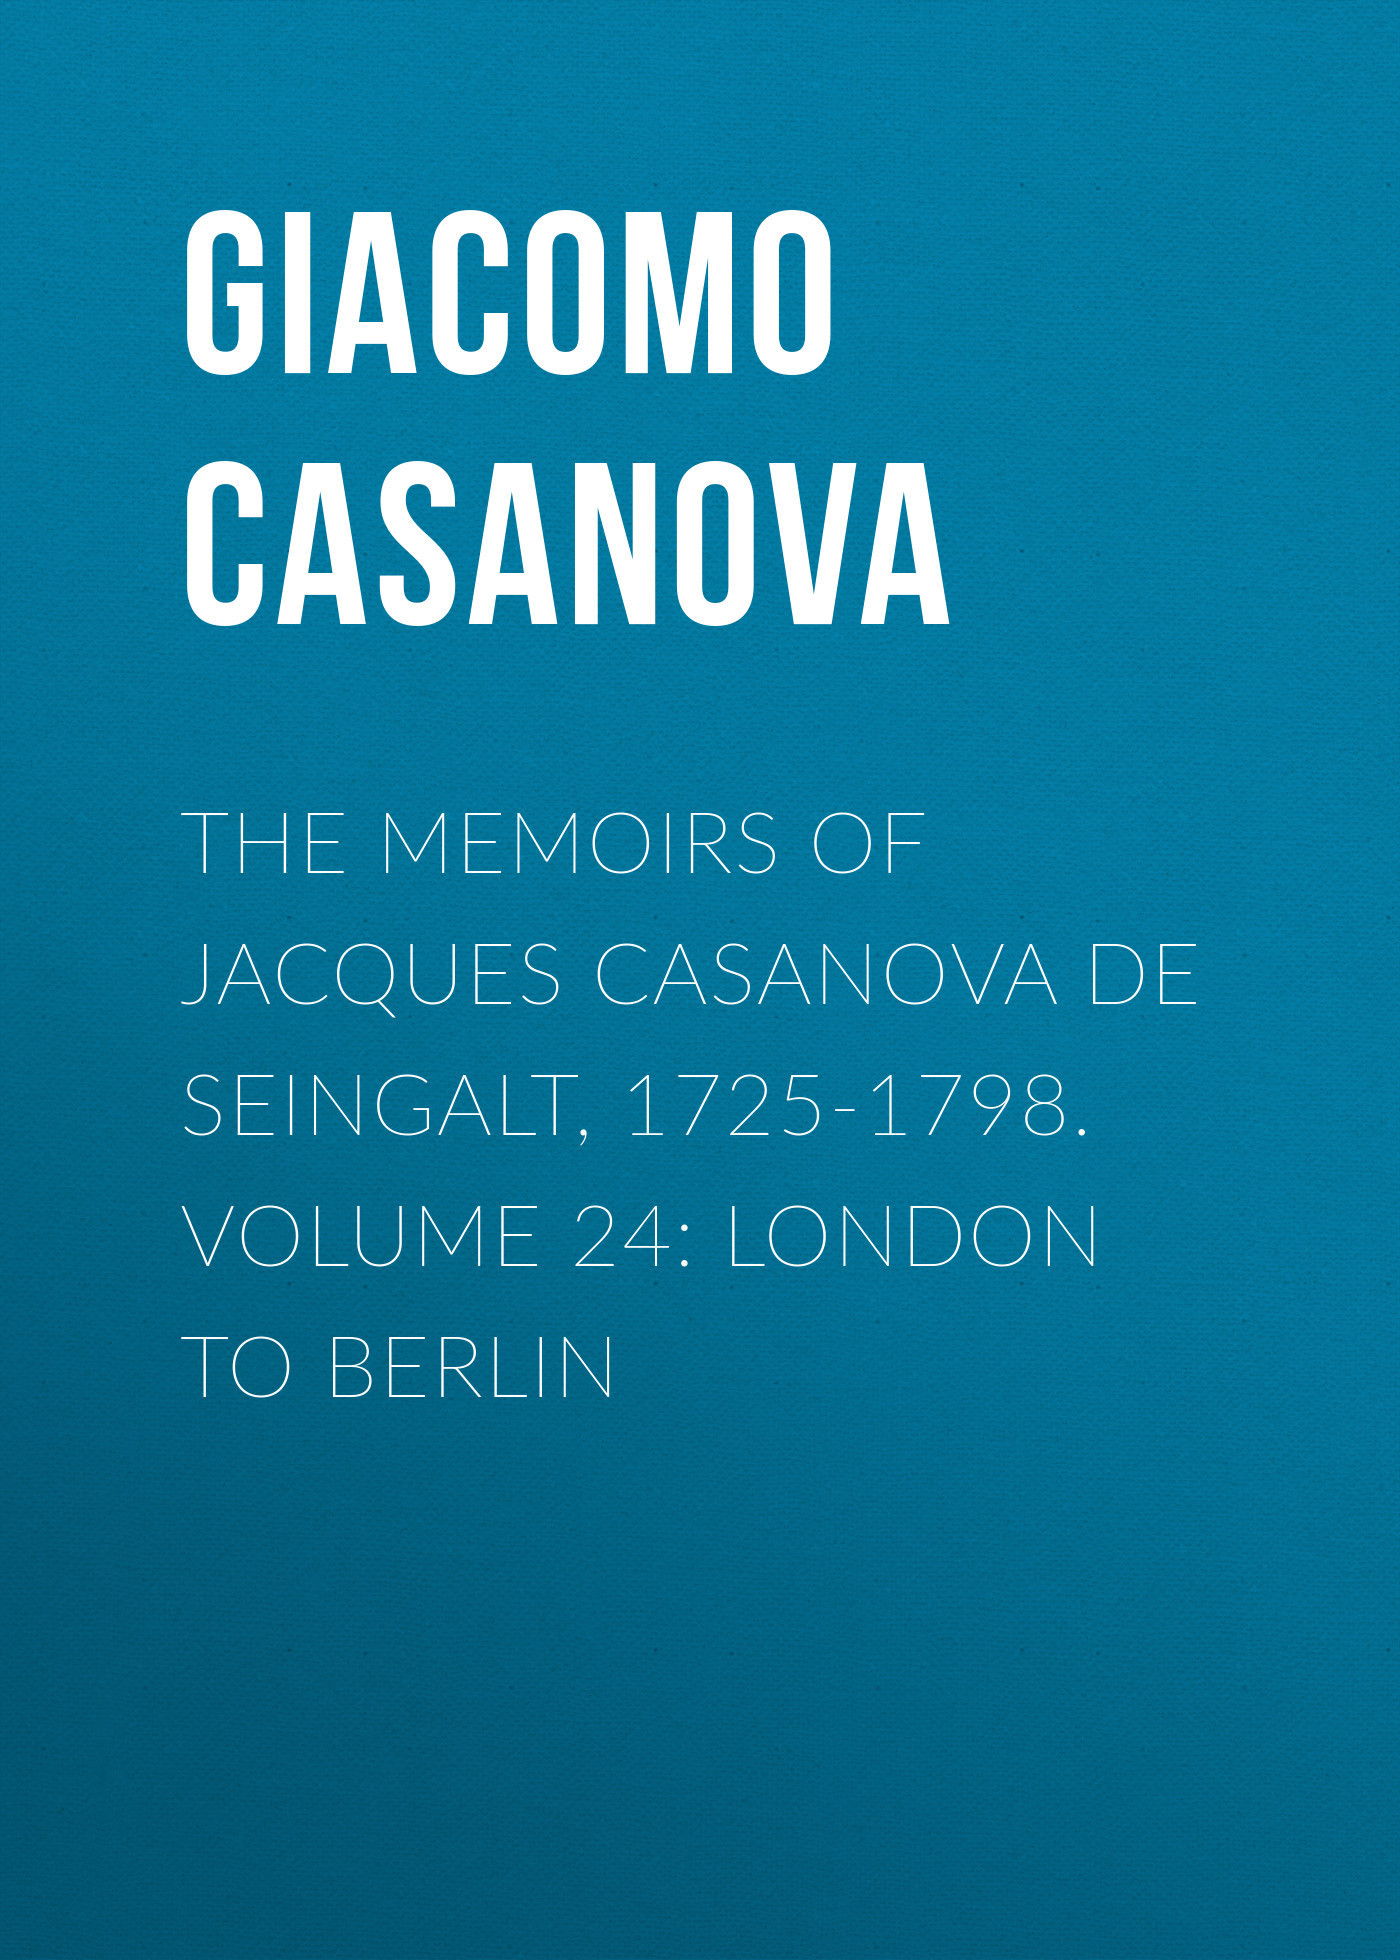 Giacomo Casanova The Memoirs of Jacques Casanova de Seingalt, 1725-1798. Volume 24: London to Berlin